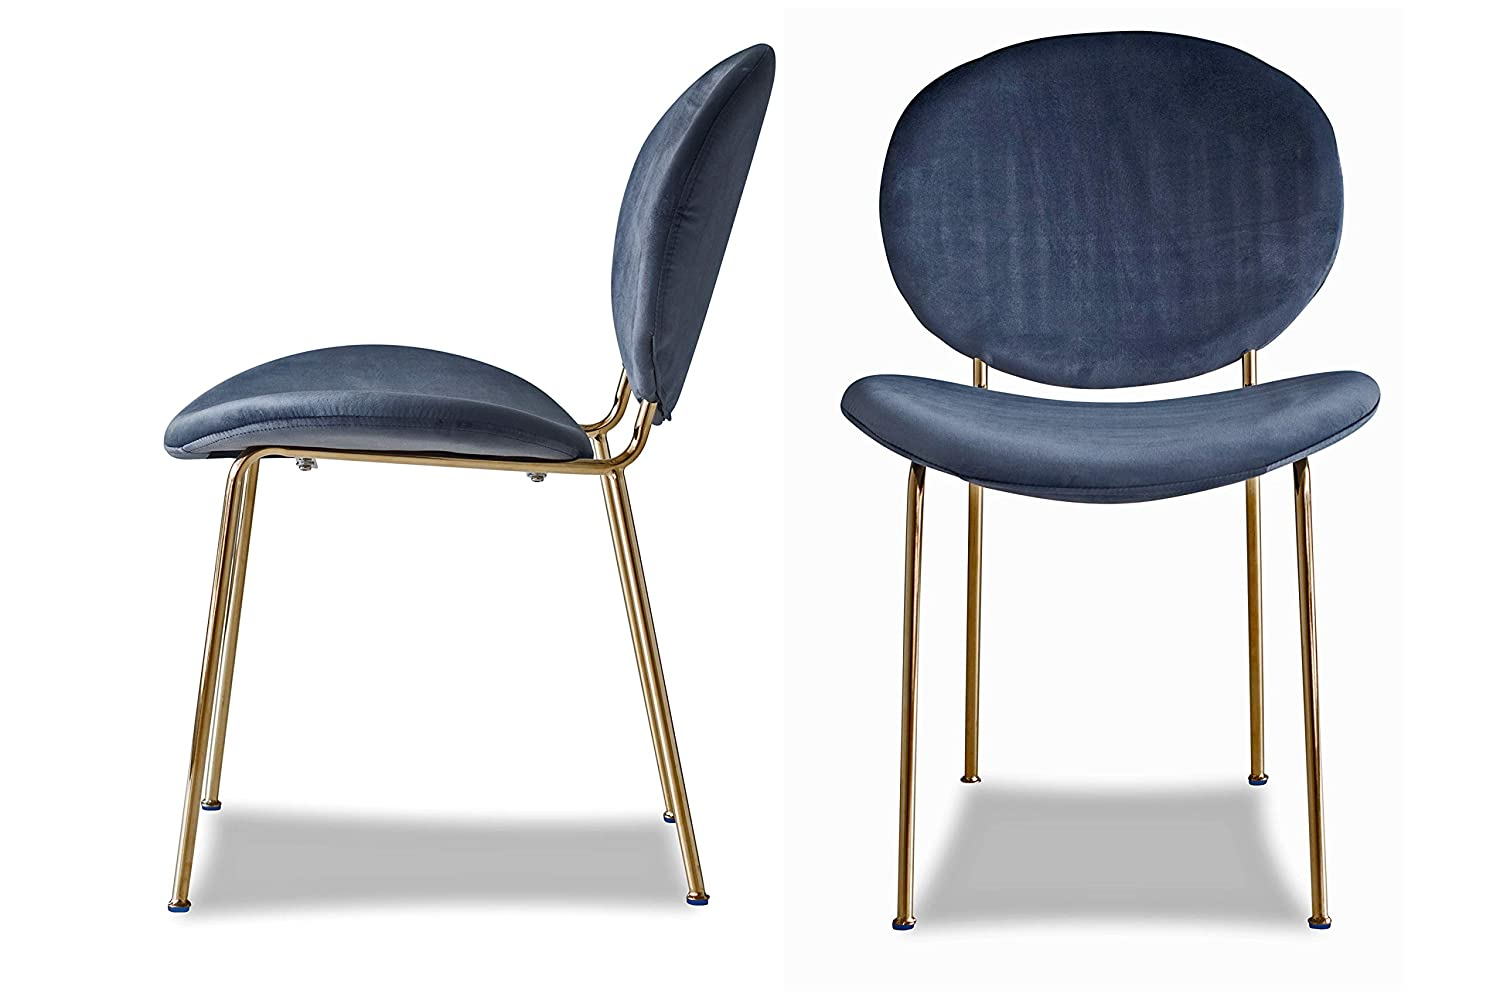 Edloe Finch Modern Velvet Dining Chairs with with Gold Legs, Grey